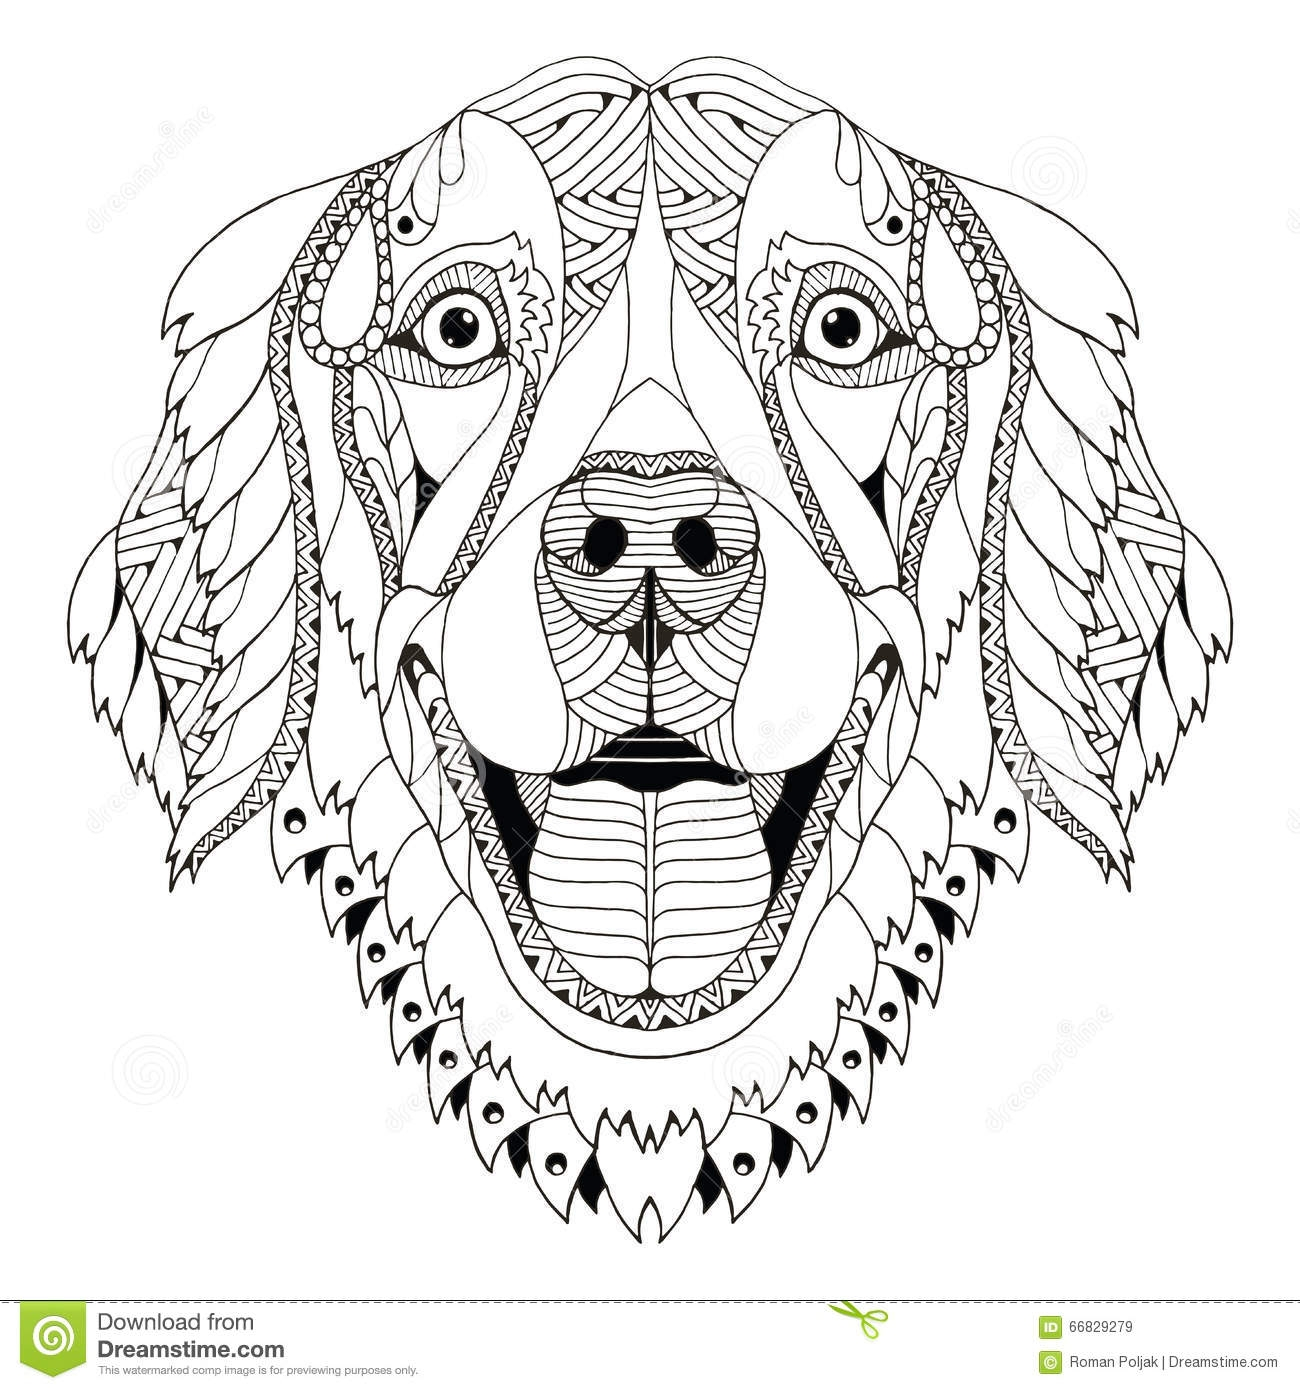 pitbull coloring pages - stock de ilustracin el zentangle del perro del golden retriever estiliz el lpiz principal pulso h image